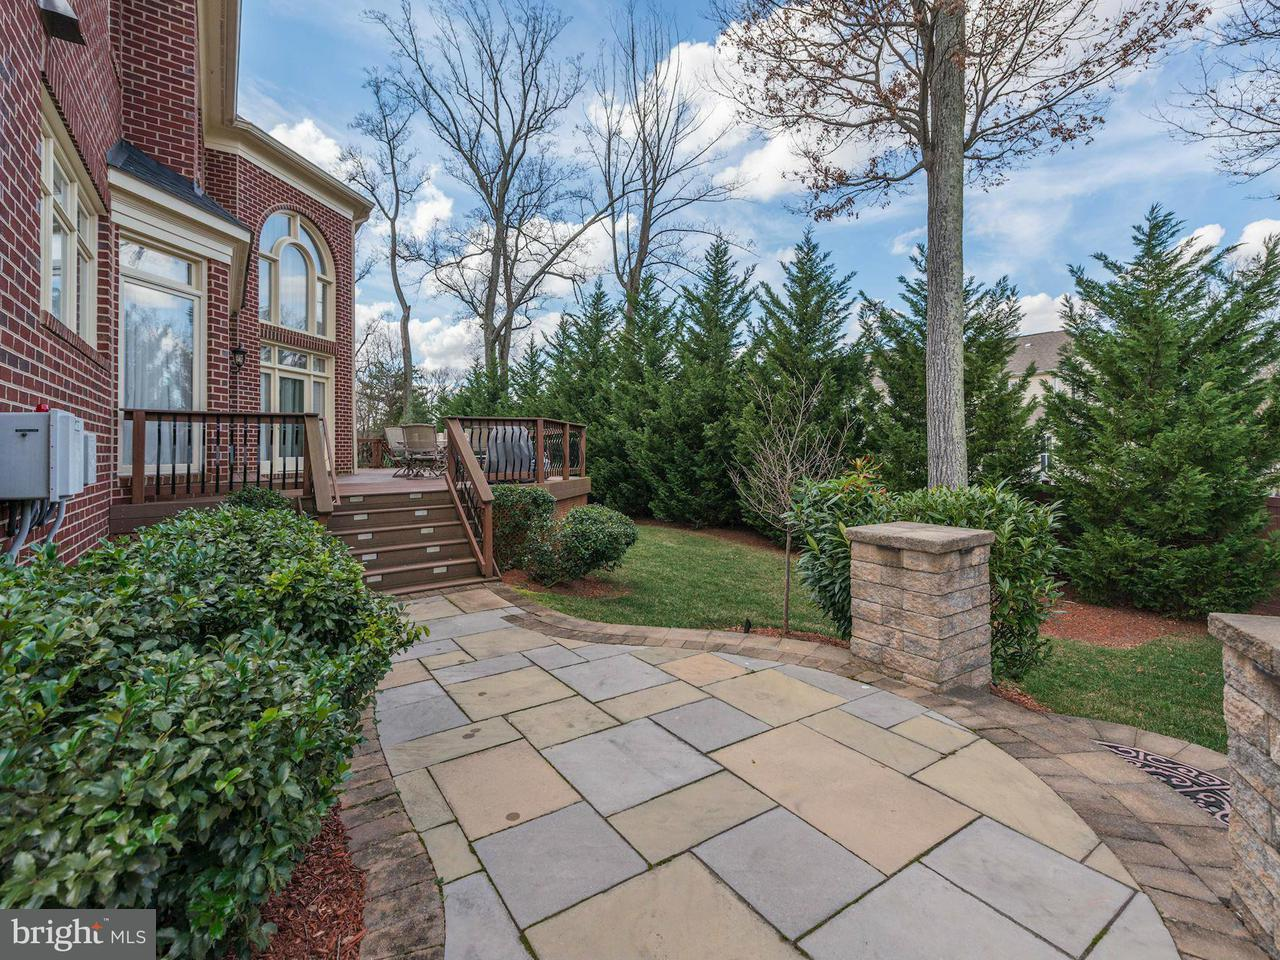 Additional photo for property listing at 3802 MILLARD WAY 3802 MILLARD WAY Fairfax, Virginia 22033 United States